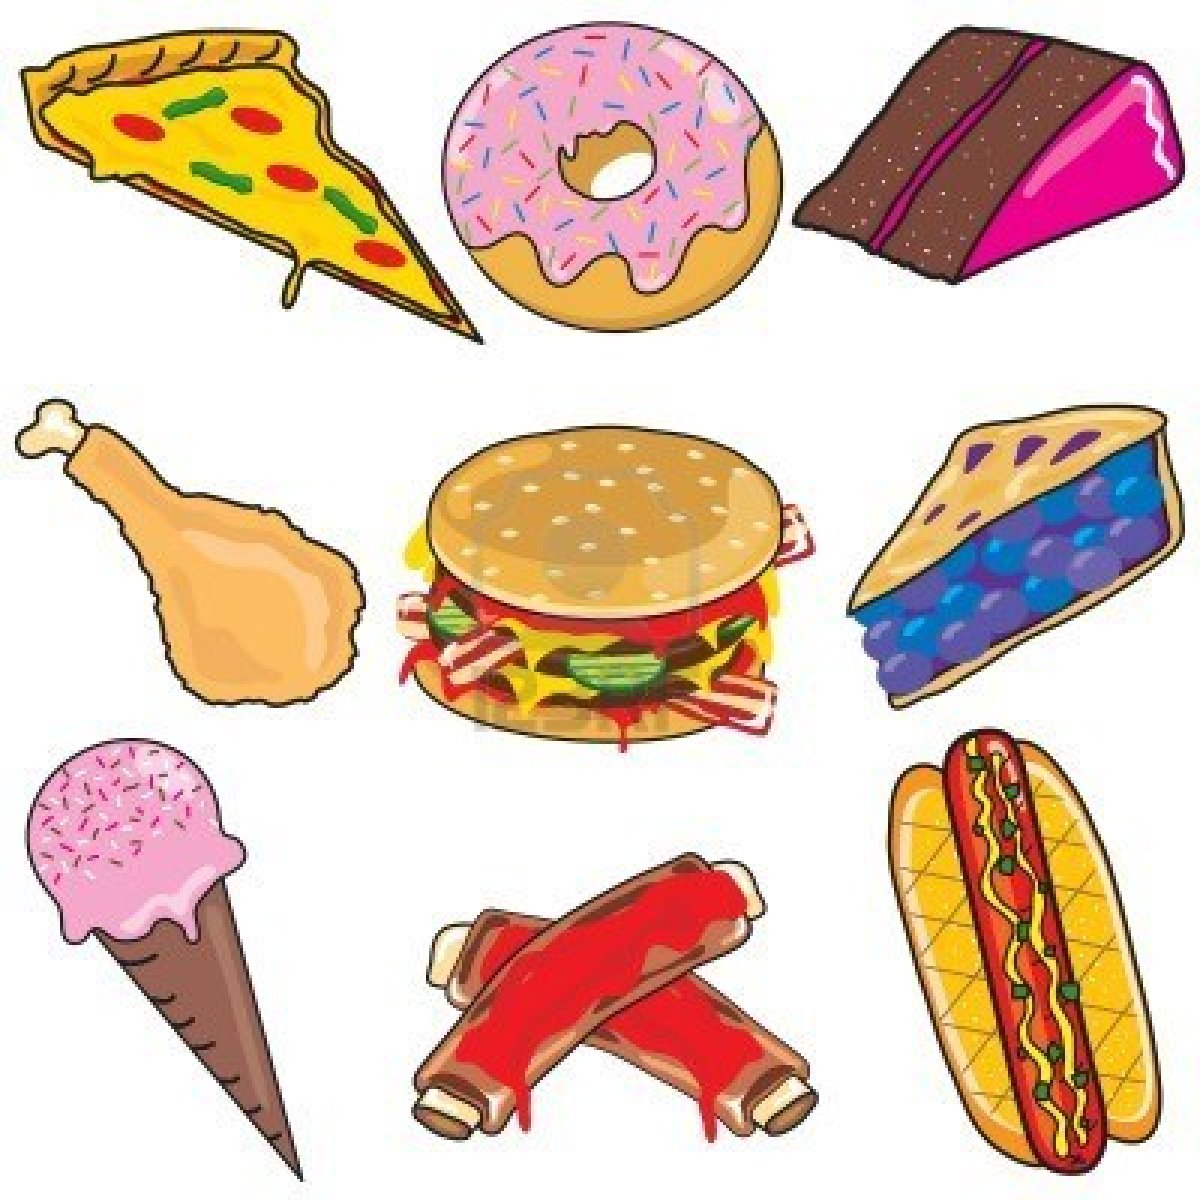 Oil clipart healthy junk food Junk Pinterest food junk Eat